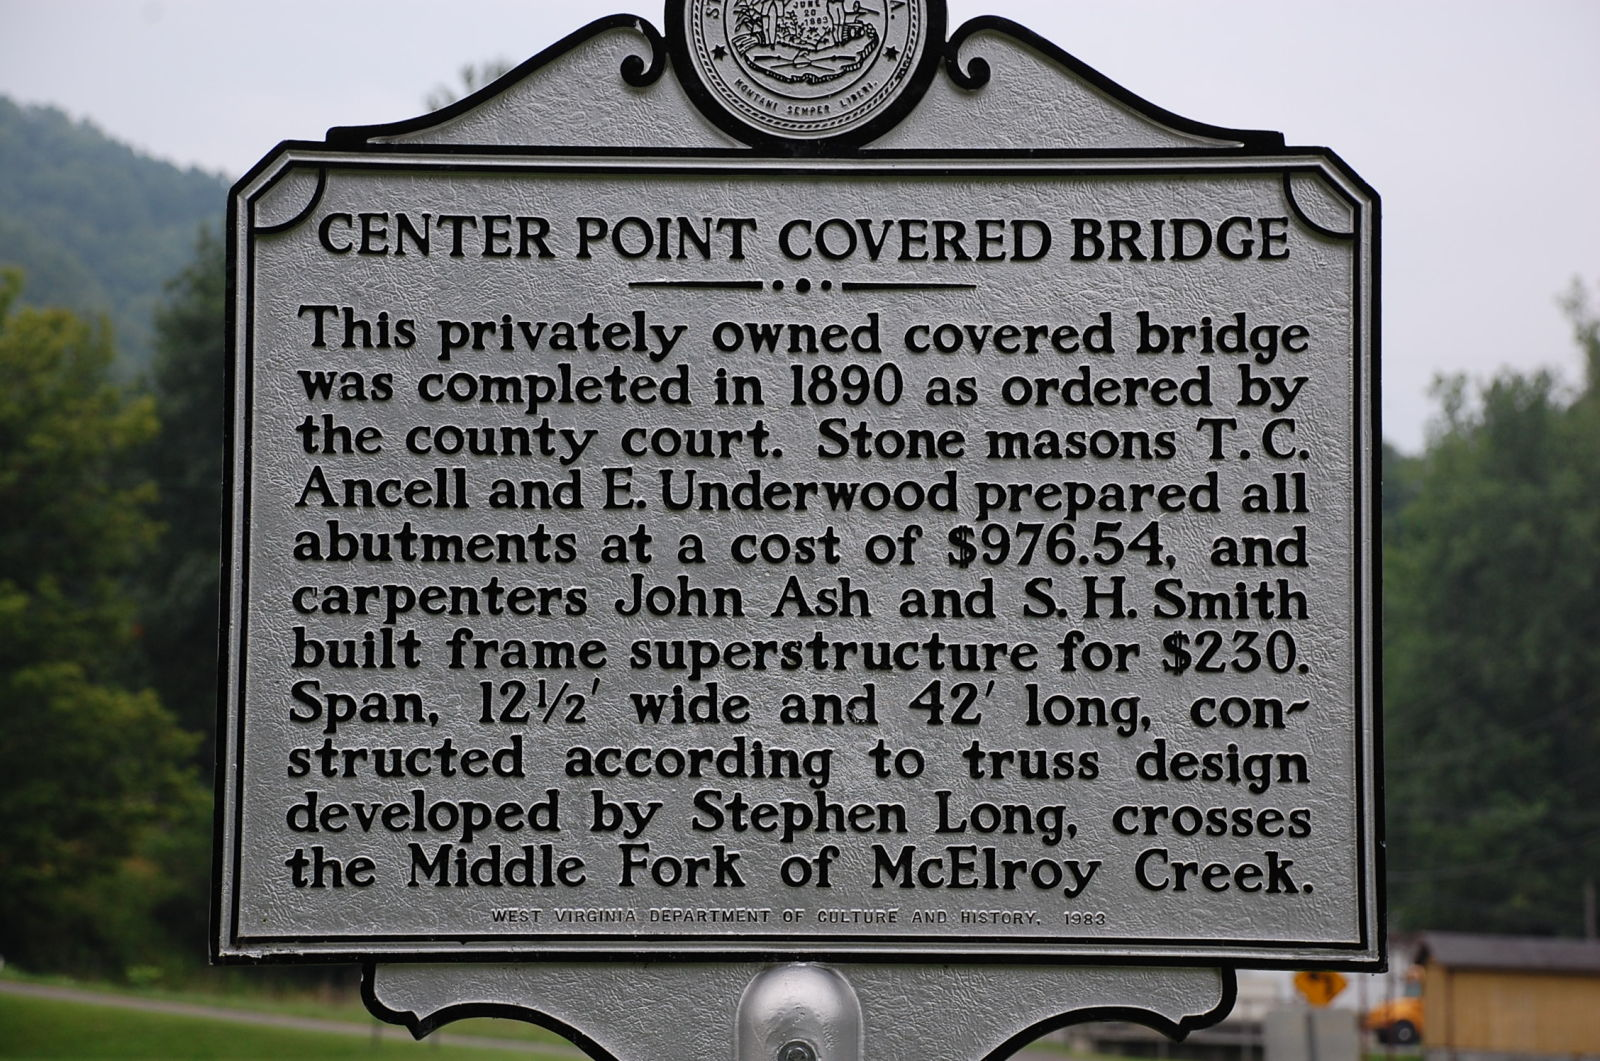 Plaque with addition information about the Center Point Covered Bridge located in Doddridge County, WV.